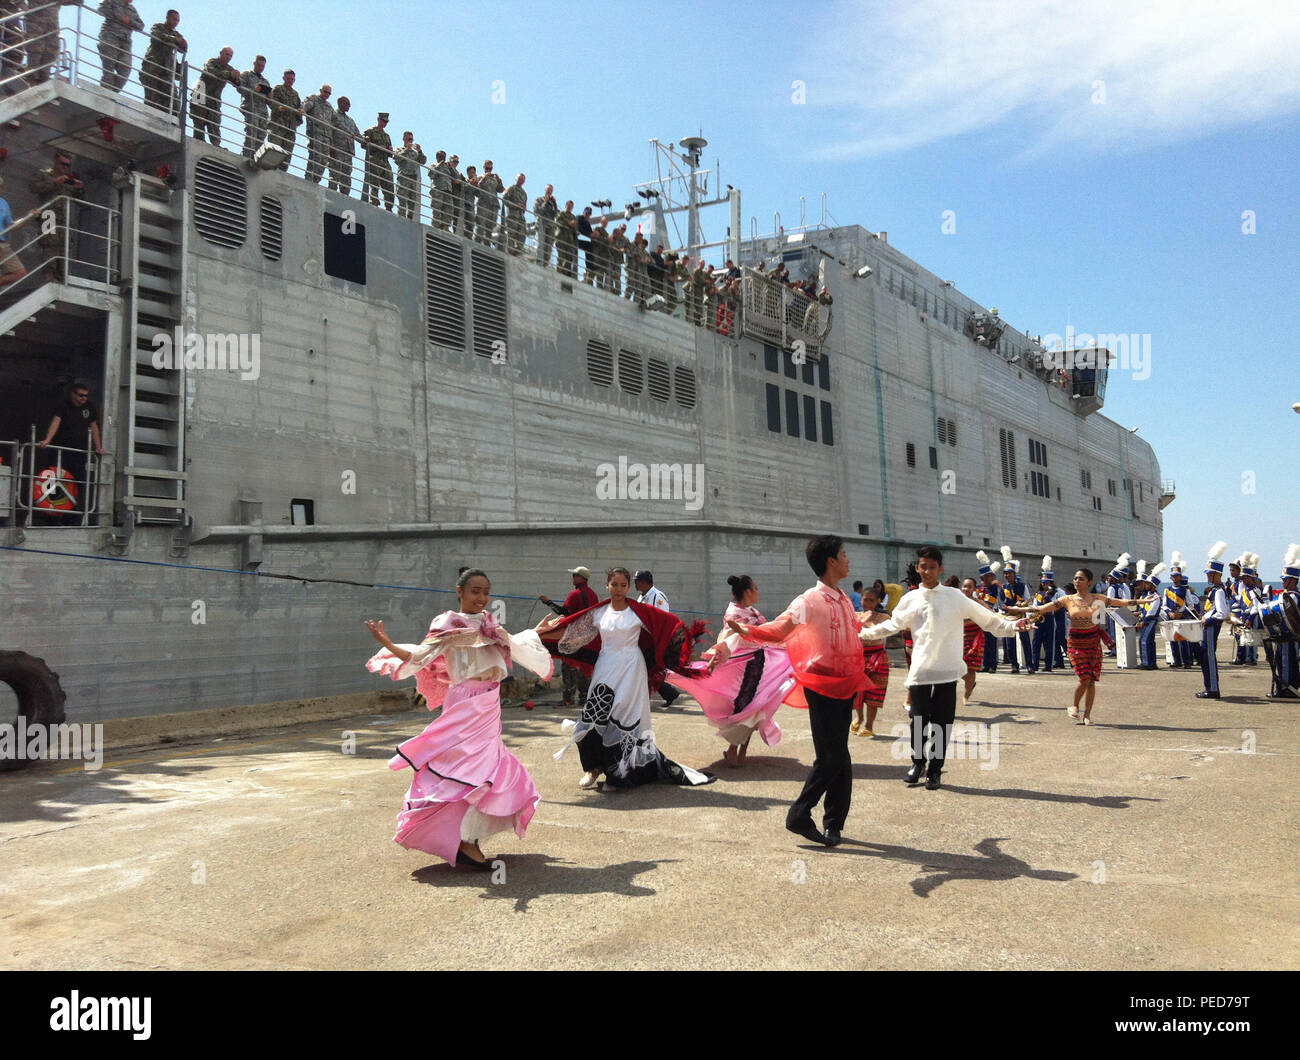 150804-N-ZZ999-021 SAN FERNANDO CITY, Philippines (Aug. 4, 2015) – Traditional Filipino dancers perform as the Military Sealift Command joint high speed vessel USNS Millinocket (JHSV 3) arrives in San Fernando City, Aug. 4. Millinocket is in the Philippines for the fourth stop of Pacific Partnership 2015. Millinocket and embarked Task Force Forager are serving as the secondary platform for Pacific Partnership, led by an expeditionary command element from the Navy's 30th Naval Construction Regiment (30 NCR) from Port Hueneme, Calif. Now in its 10th iteration, Pacific Partnership is the largest  - Stock Image